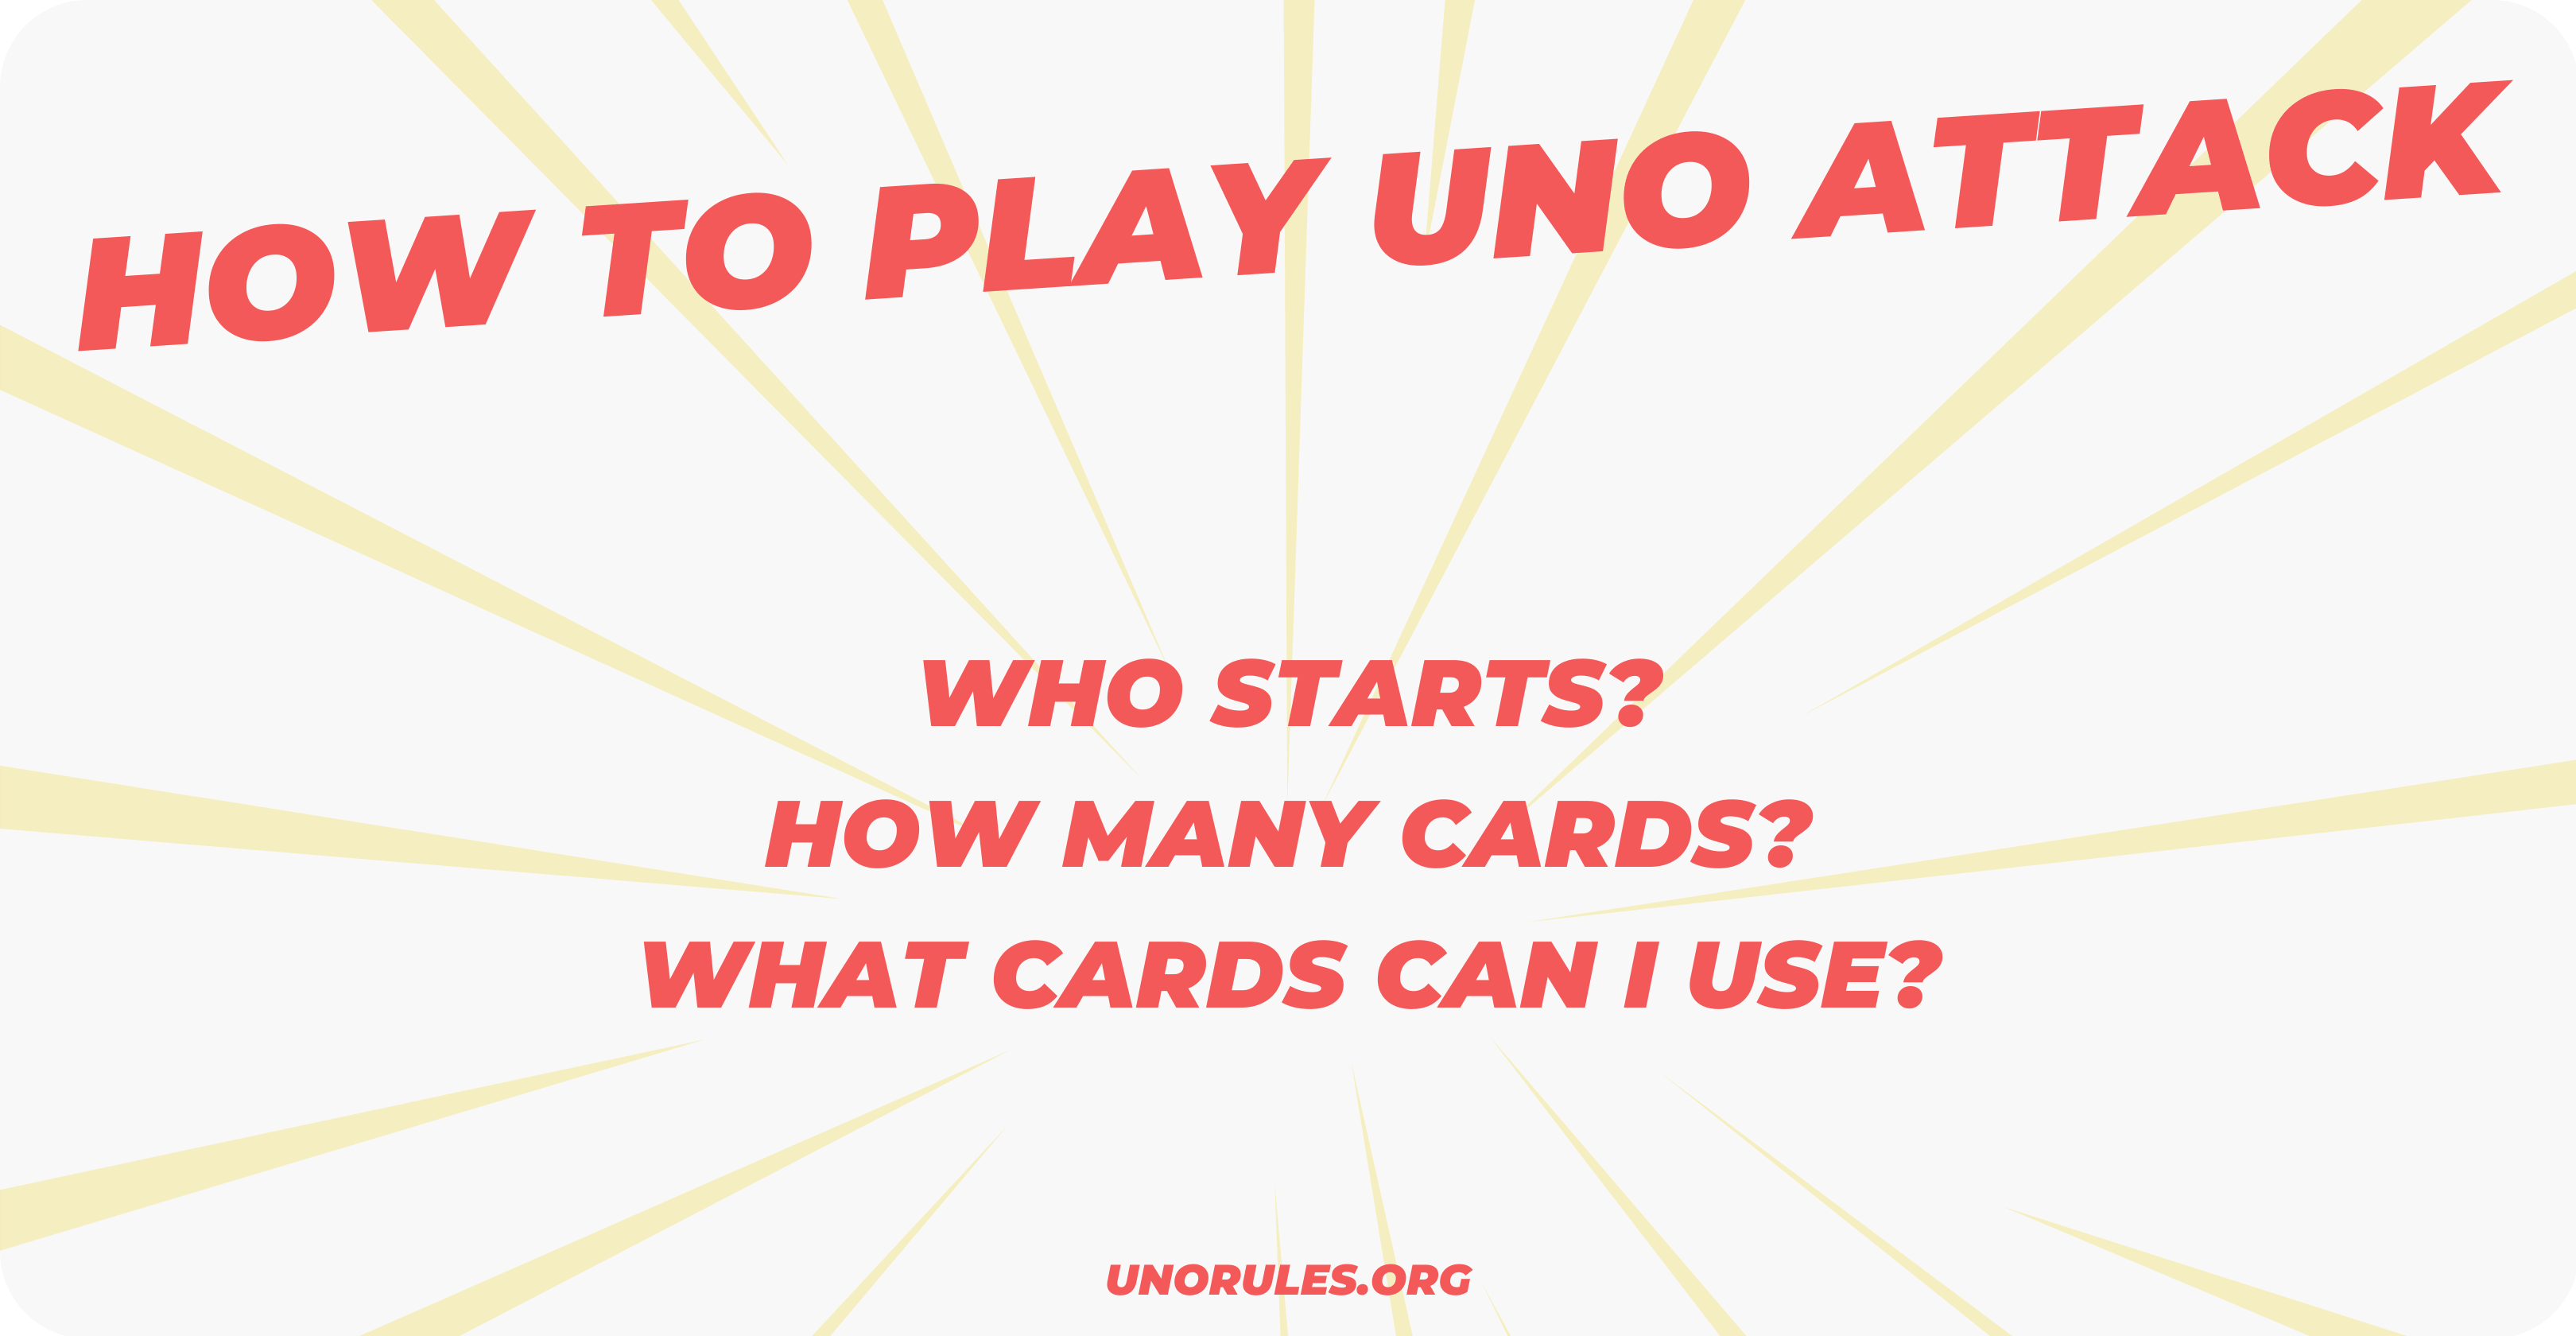 How to play uno attack